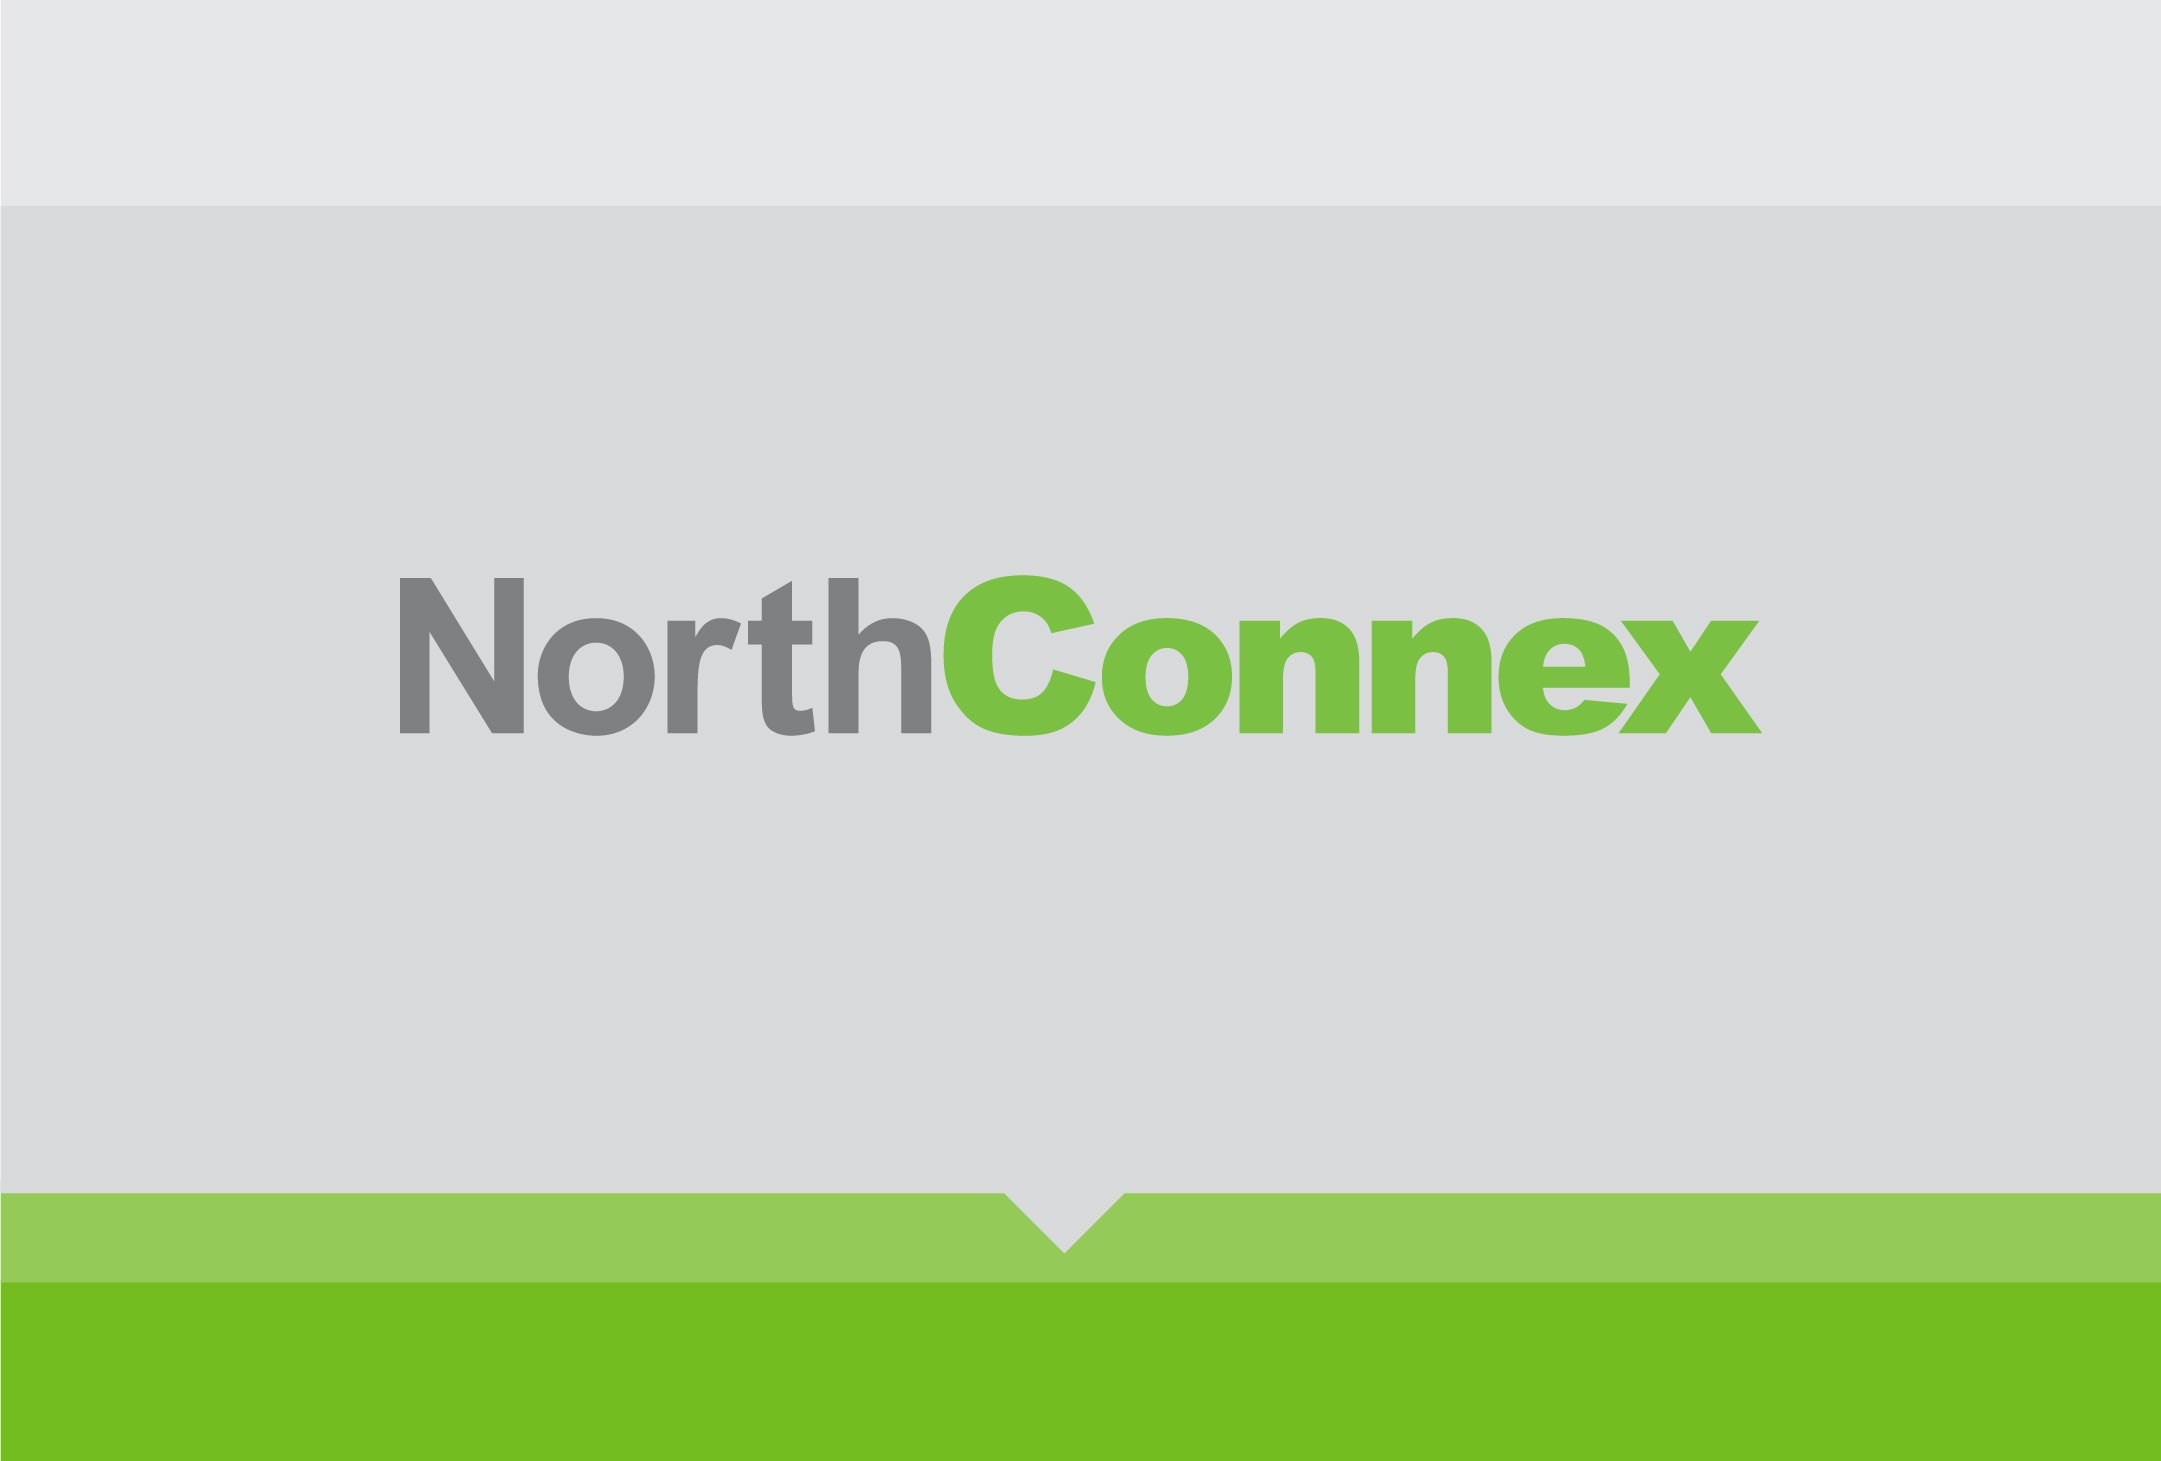 NorthConnex brand graphics_Presentations